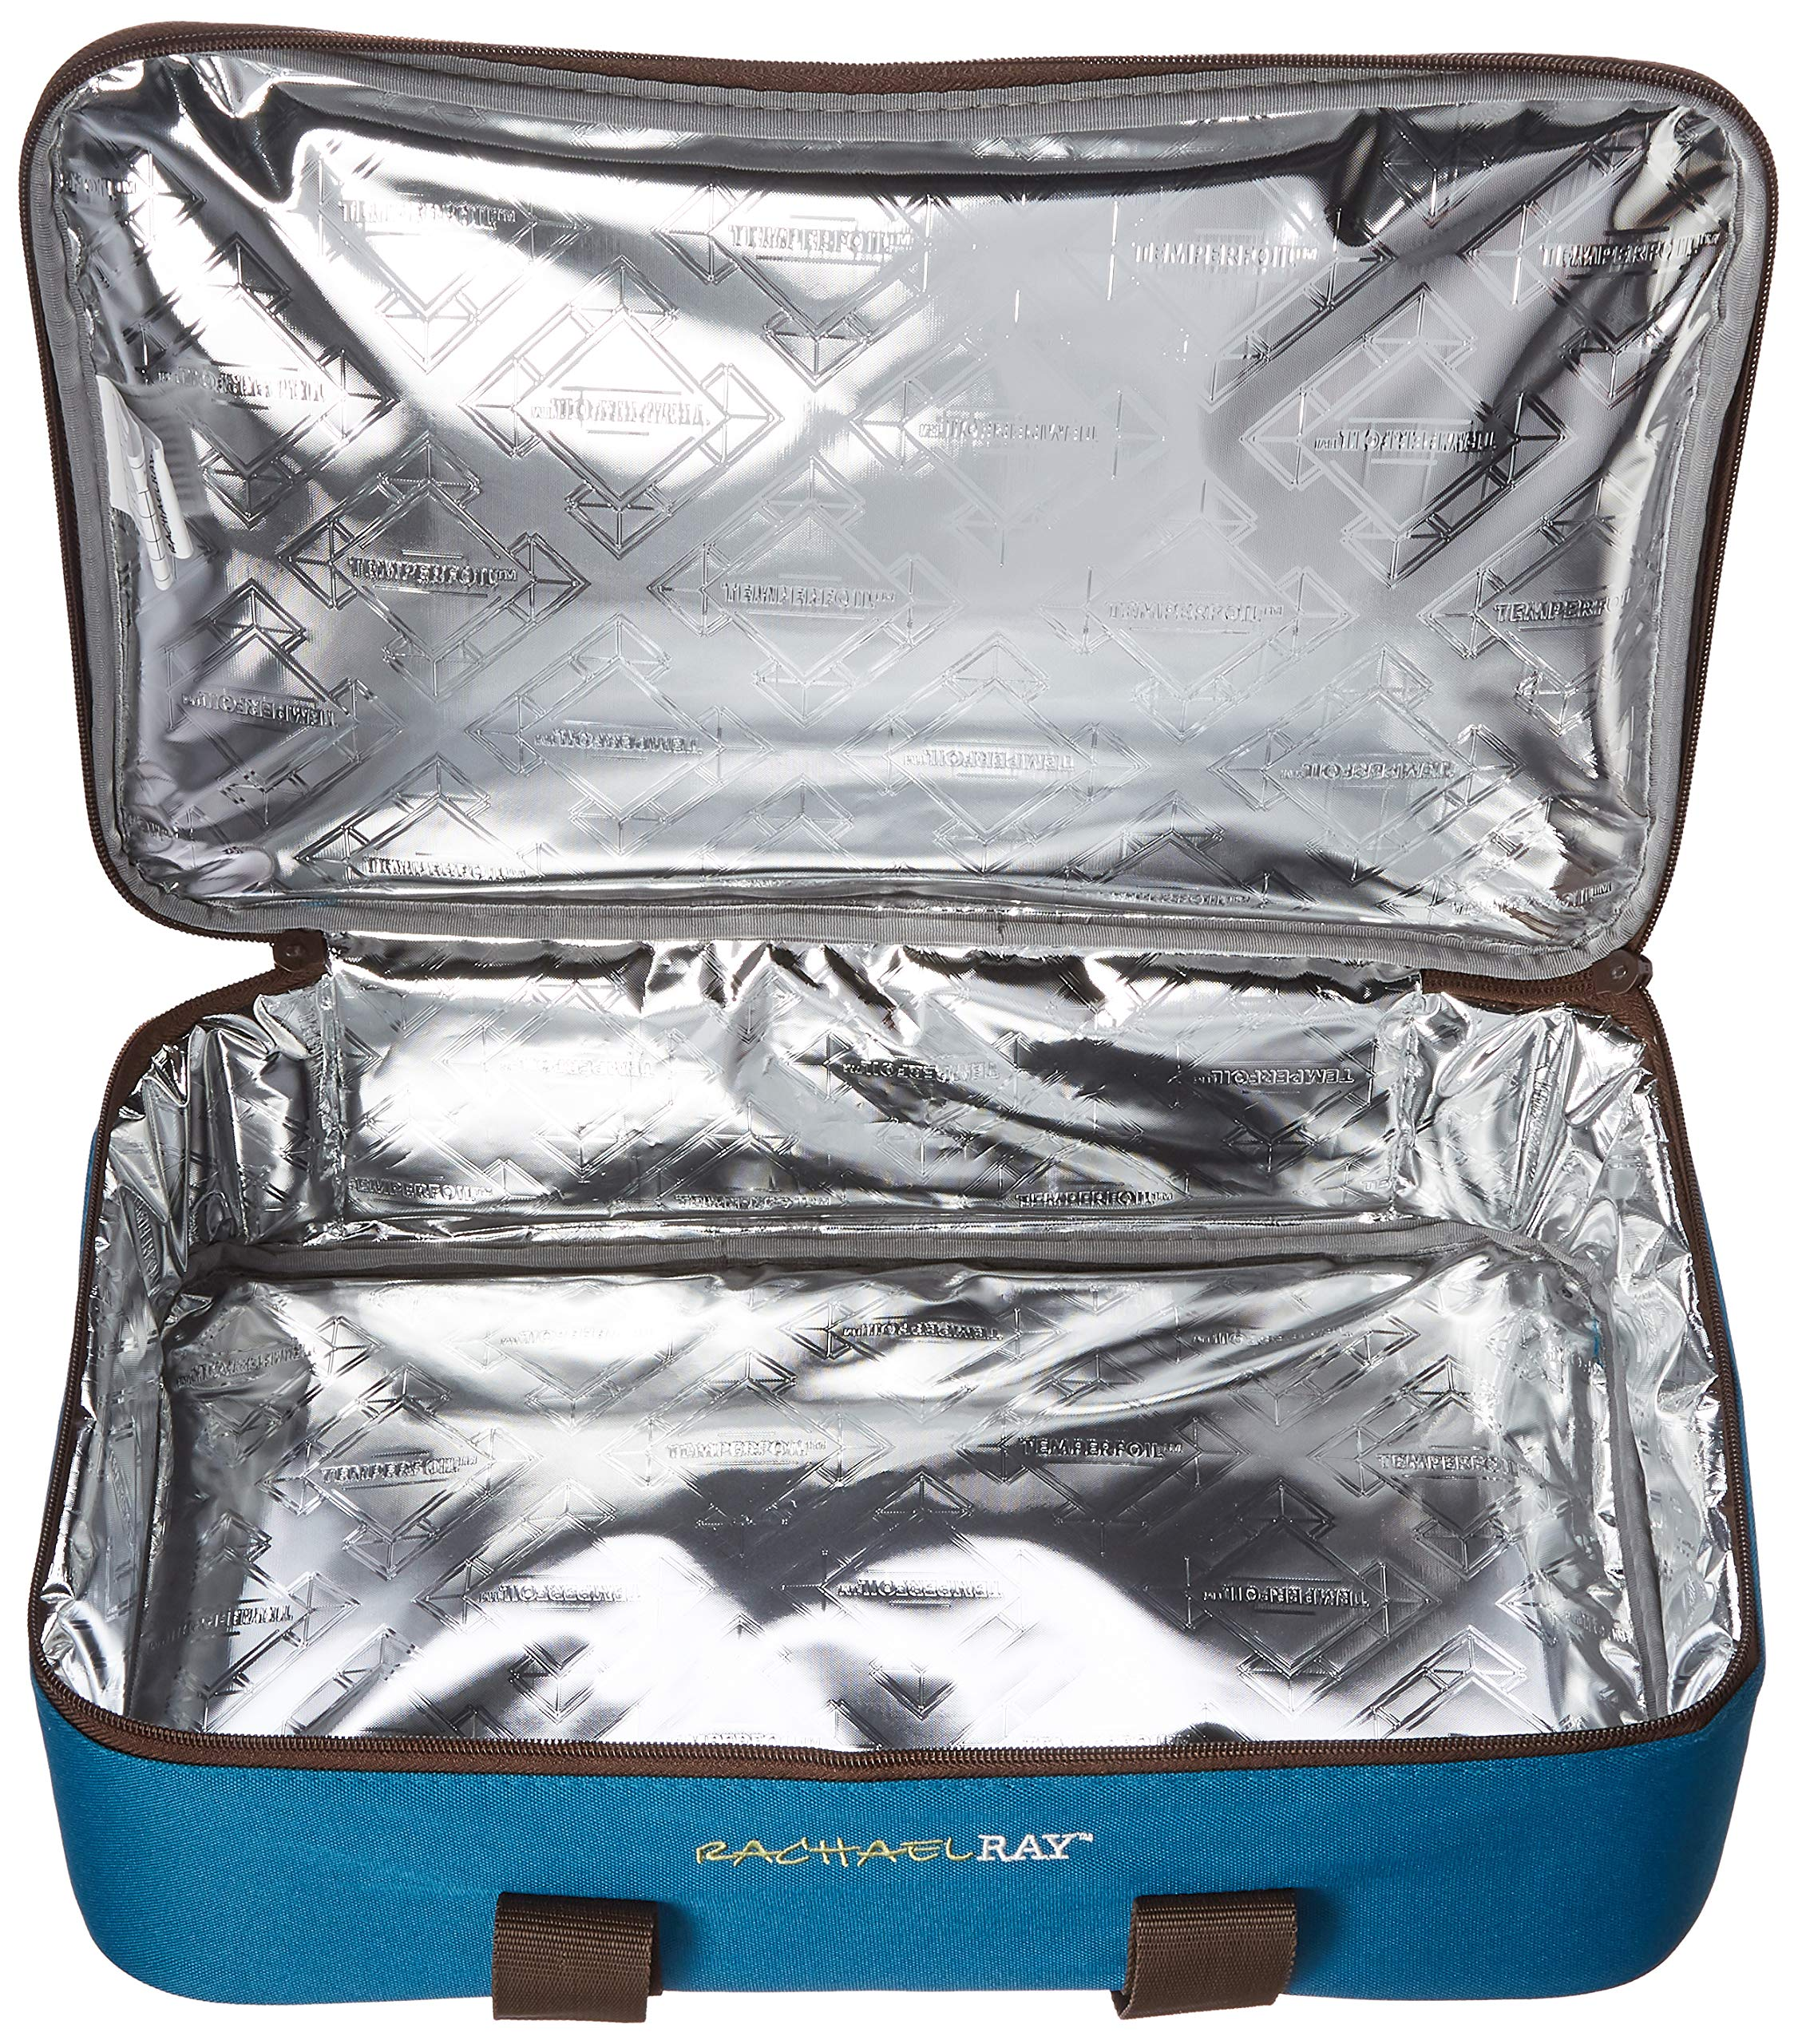 Rachael Ray Lasagna Lugger, Insulated Casserole Carrier for Potluck Parties, Picnics, Tailgates - Fits 9''x13'' Baking Dish, Marine Blue Stripes by Rachael Ray (Image #4)